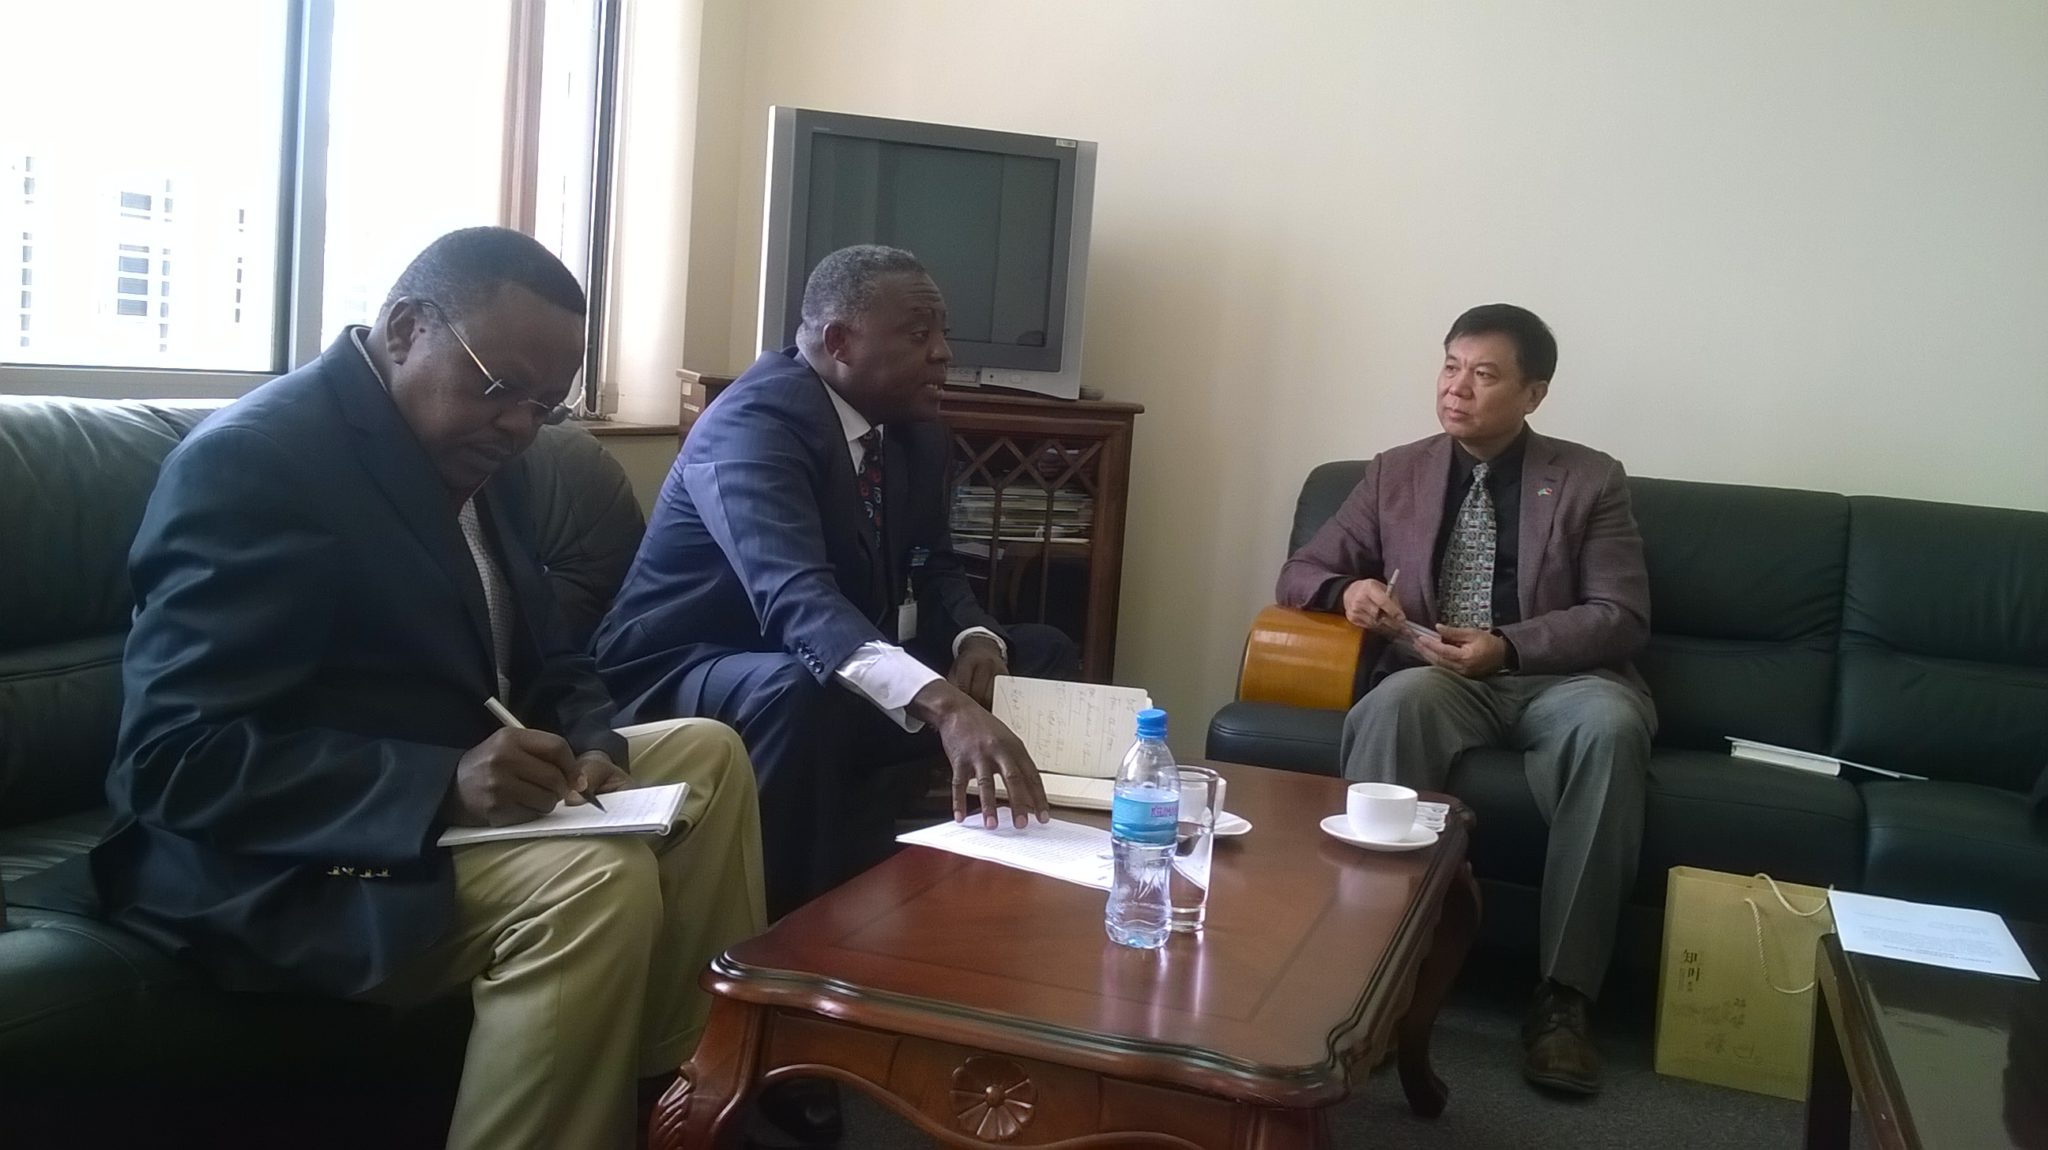 Mr. Gou Haodong, Minister-Counsellor at the Chinese Embassy in Dar es Salaam, with the Director of Infrastructure at the EAC Secretariat, Mr. Philip Wambugu. On the left is the Dr. James Njagu, the Chef de Cabinet to the EAC Secretary General.